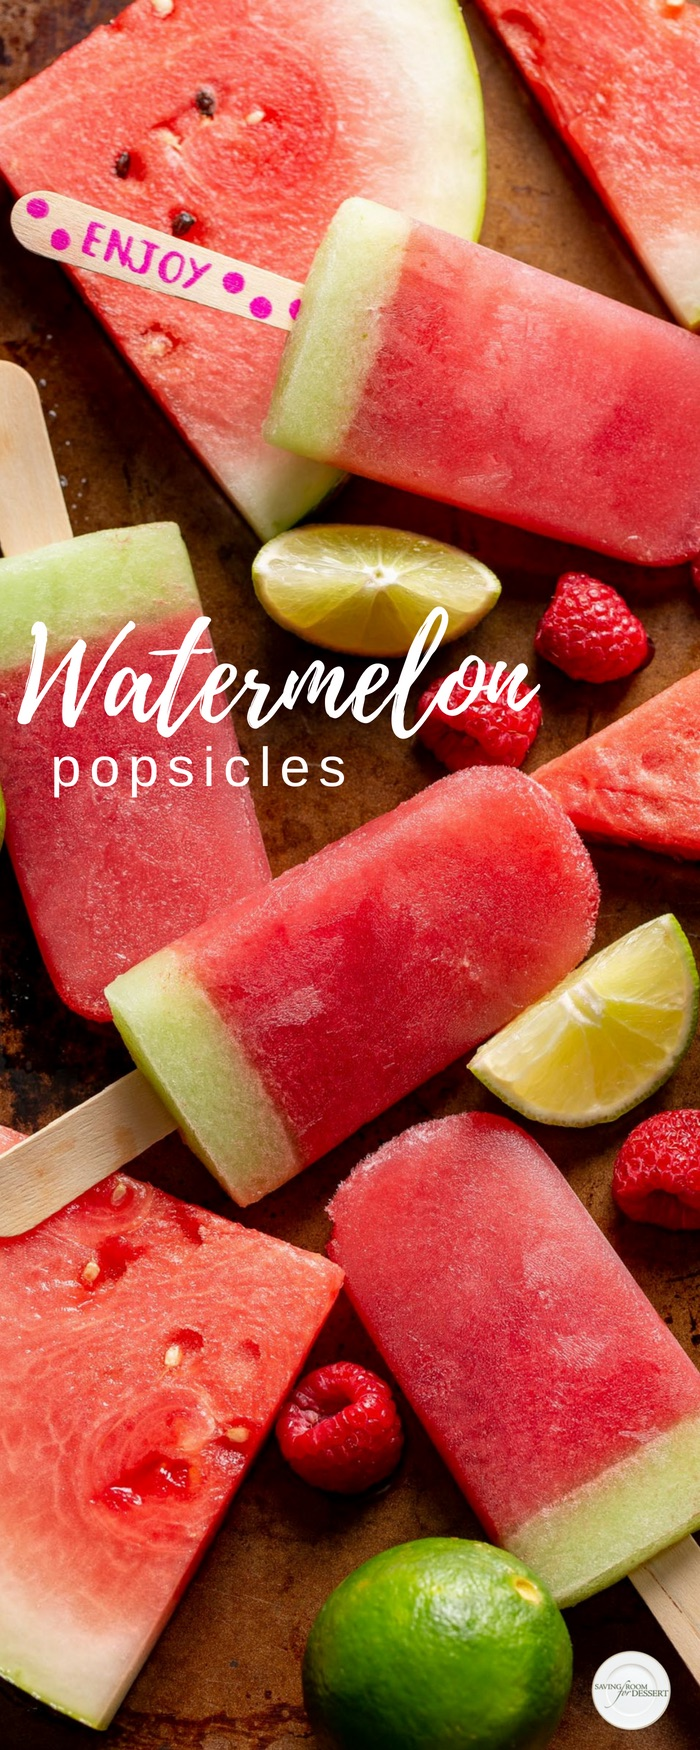 Watermelon popsicles scattered on a baking tray with raspberries, lime wedges and pieces of watermelon